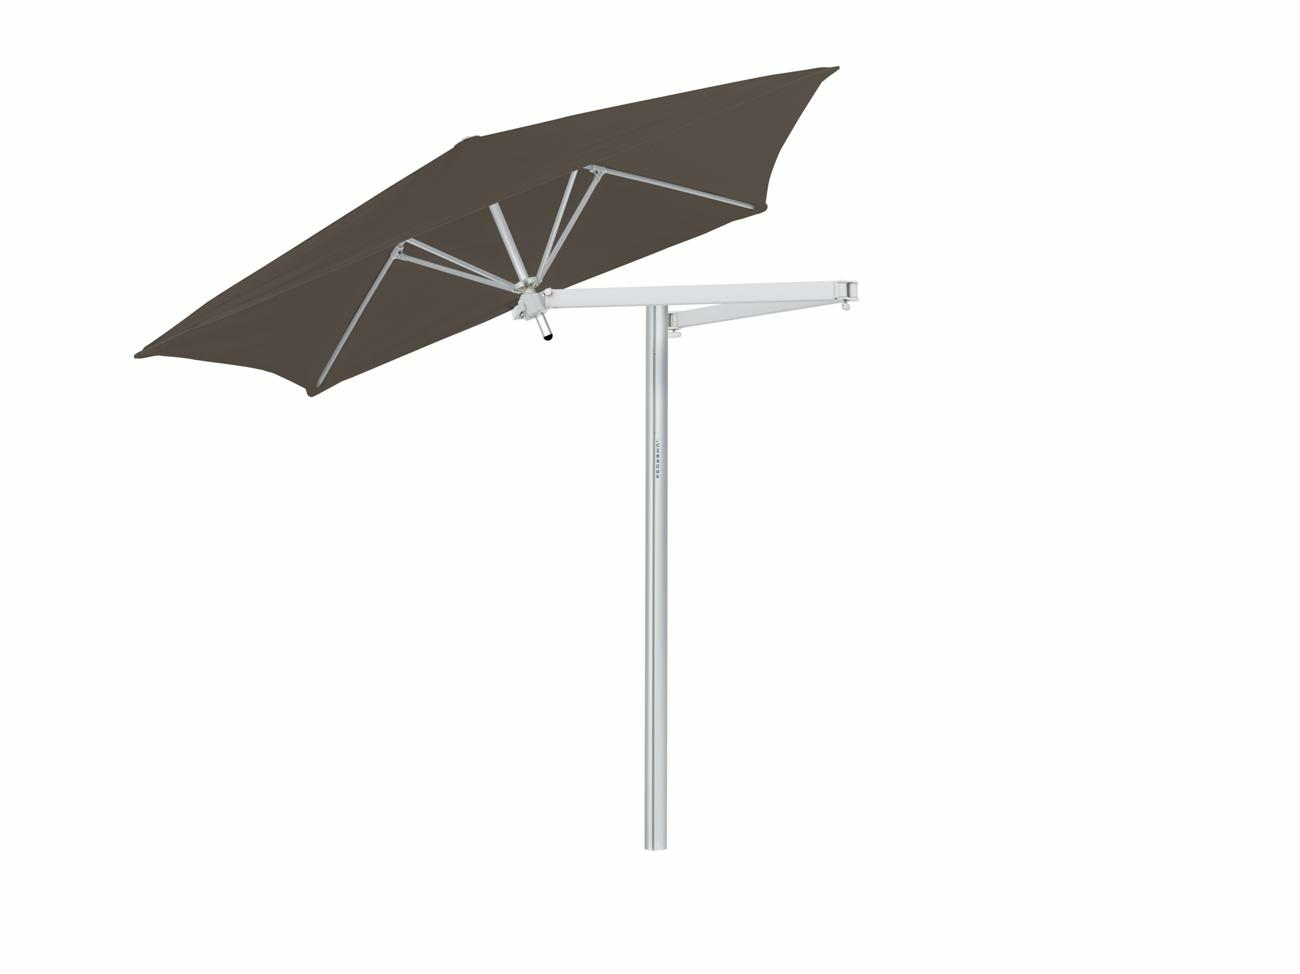 Paraflex cantilever umbrella square 1,9 m with Taupe fabric and a Neo arm